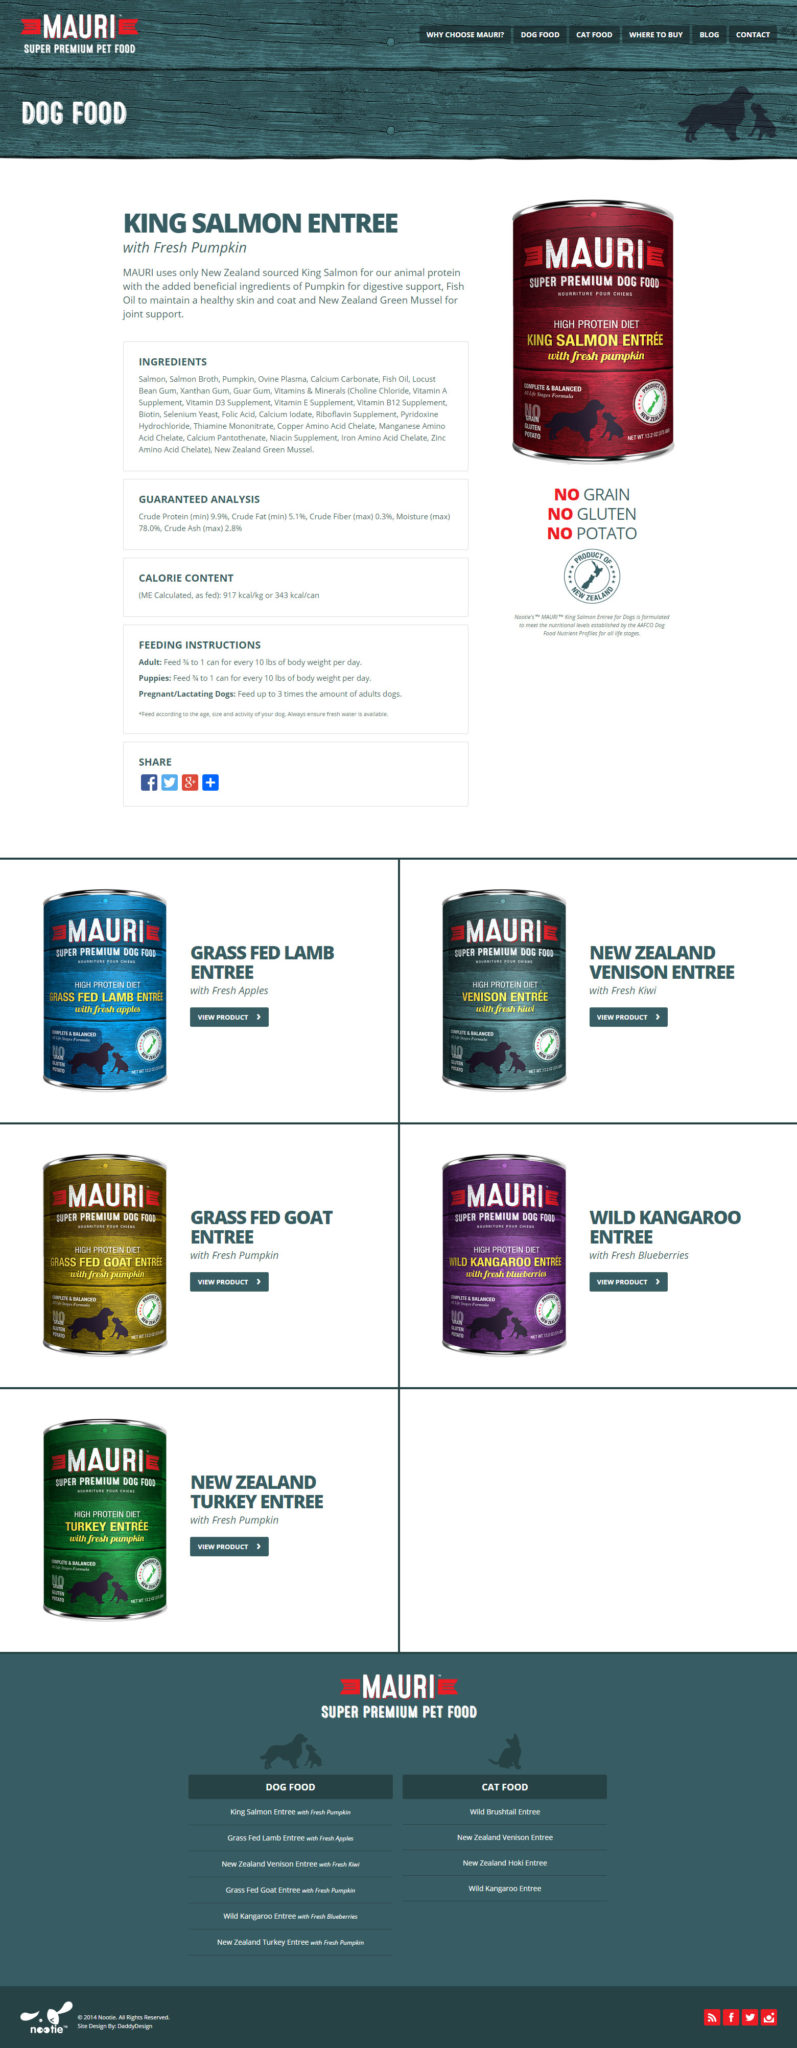 Dog Food Product Page Layout